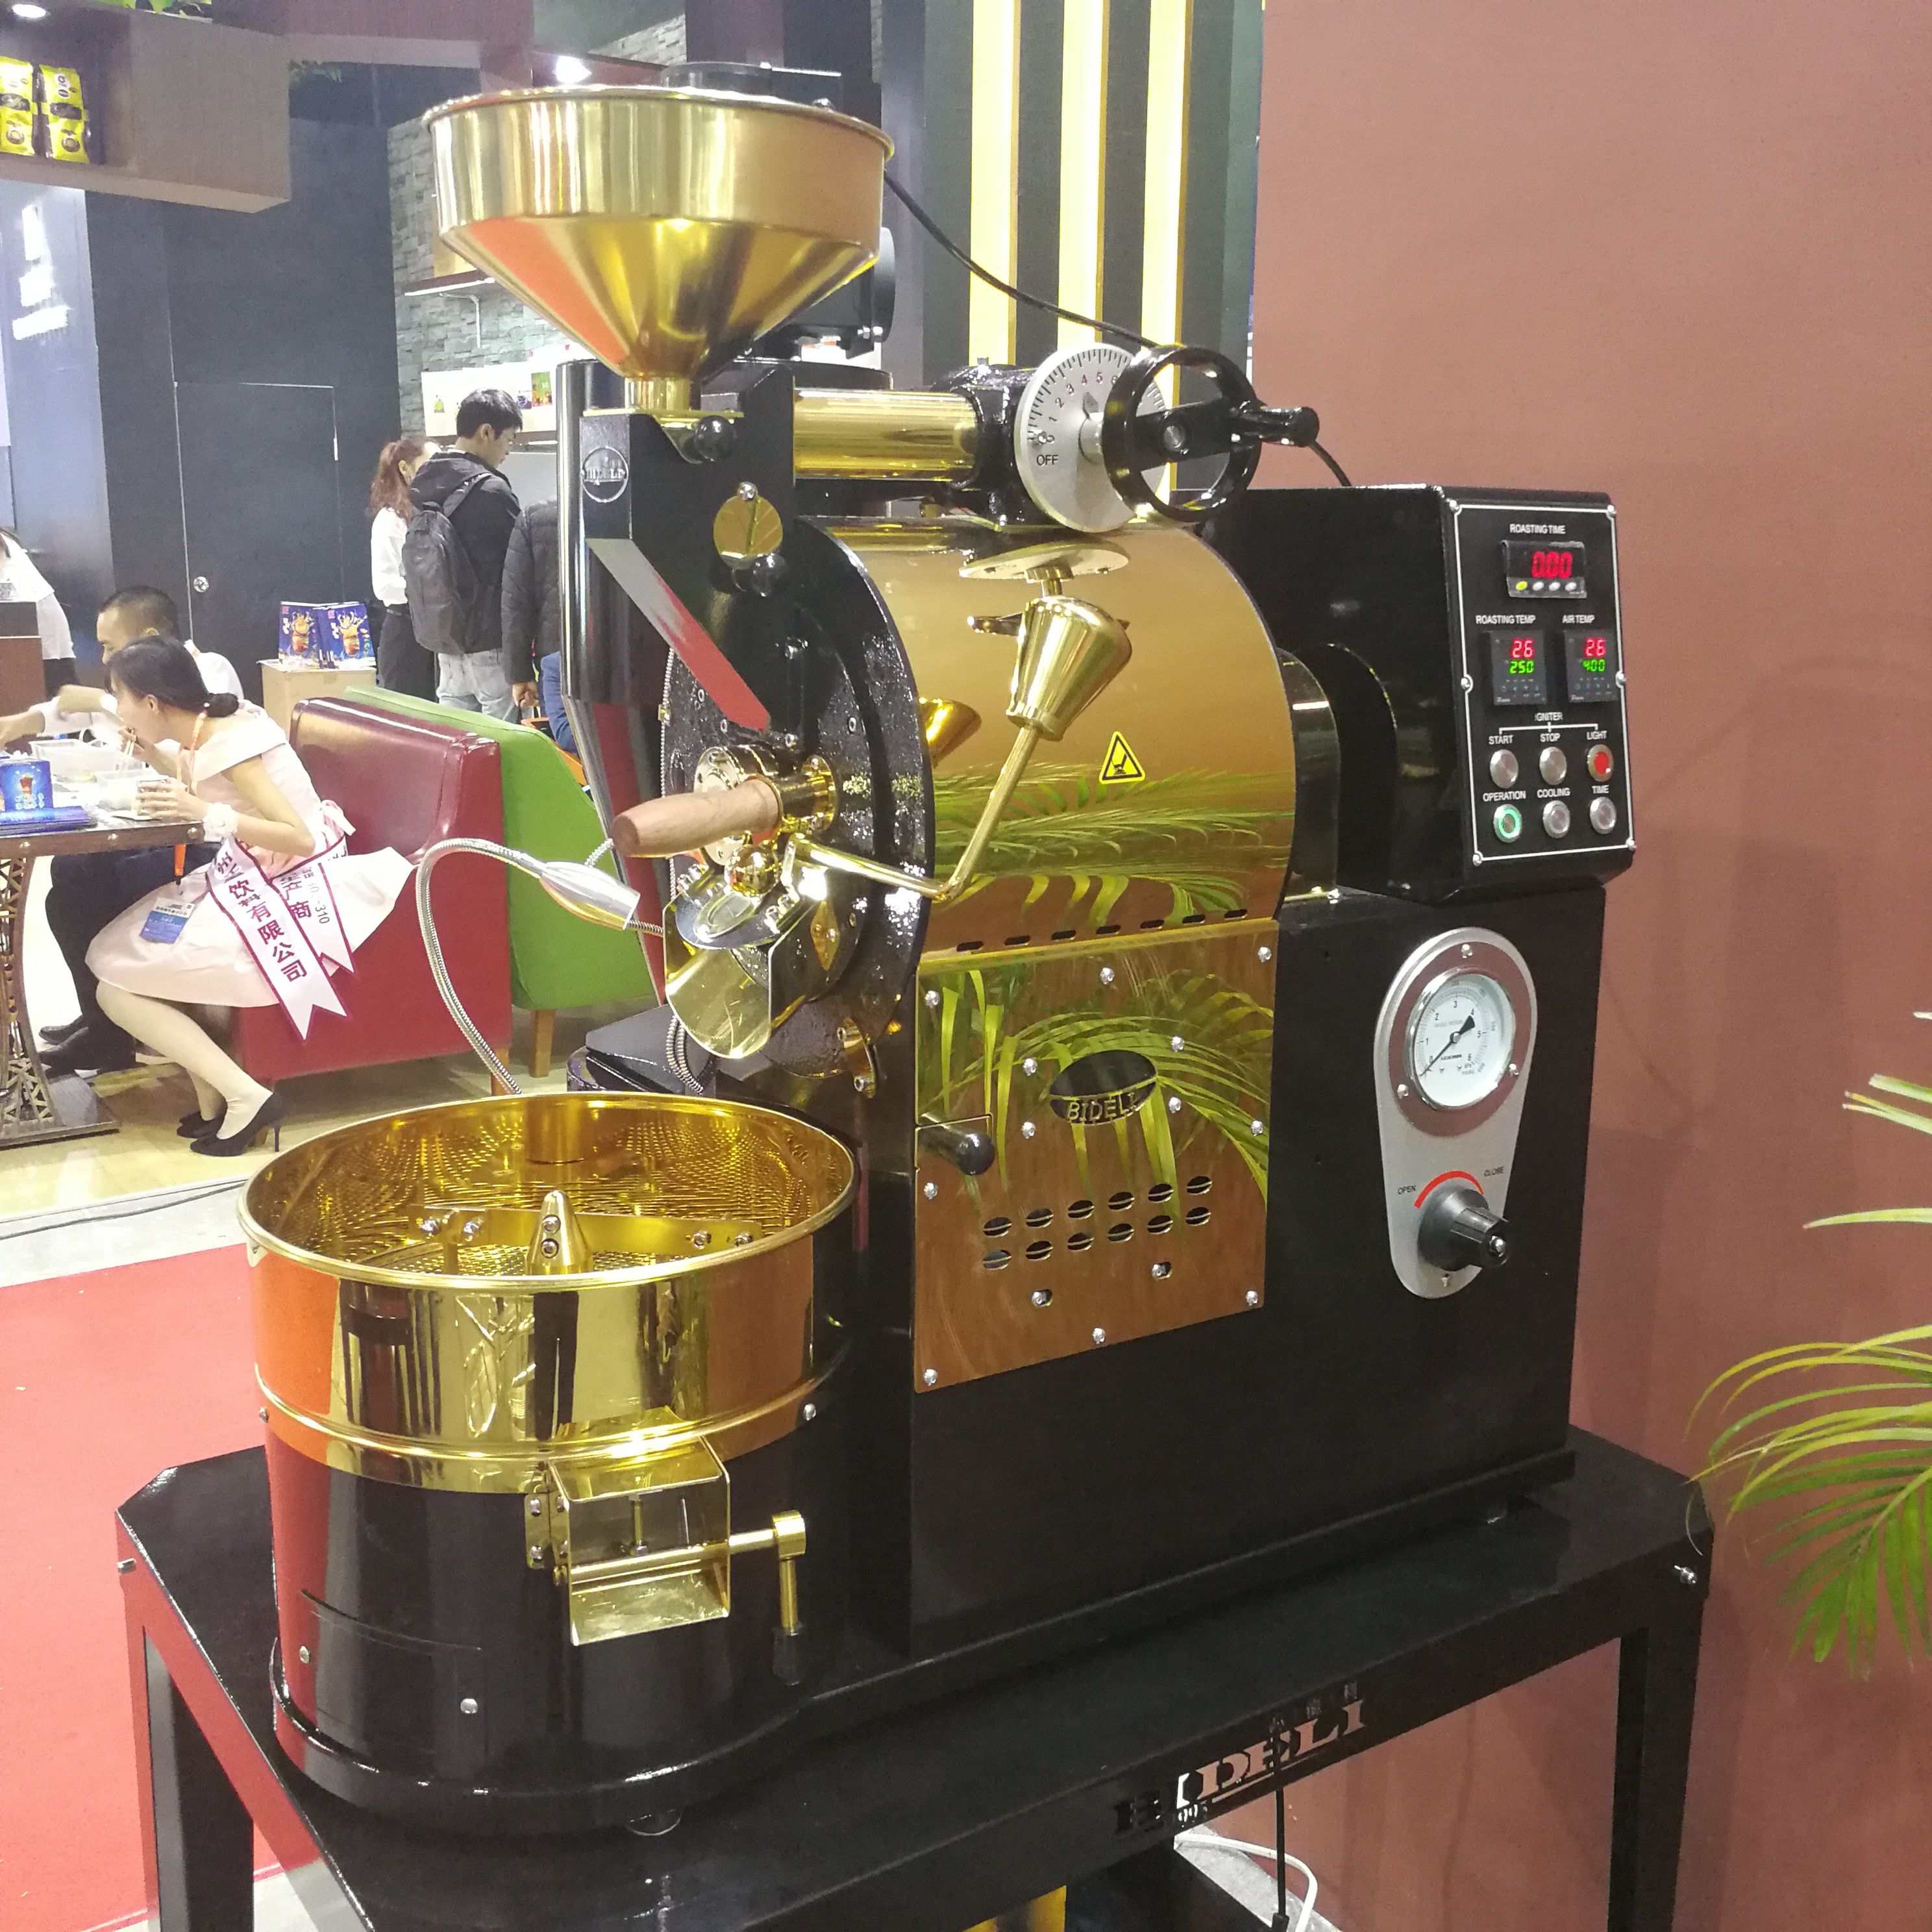 Dalian Amazon Corp 1kg Coffee Roaster Black Gold Finished Color Gas Heating Source Gas Heating Coffee Roasters Amazon Coffee